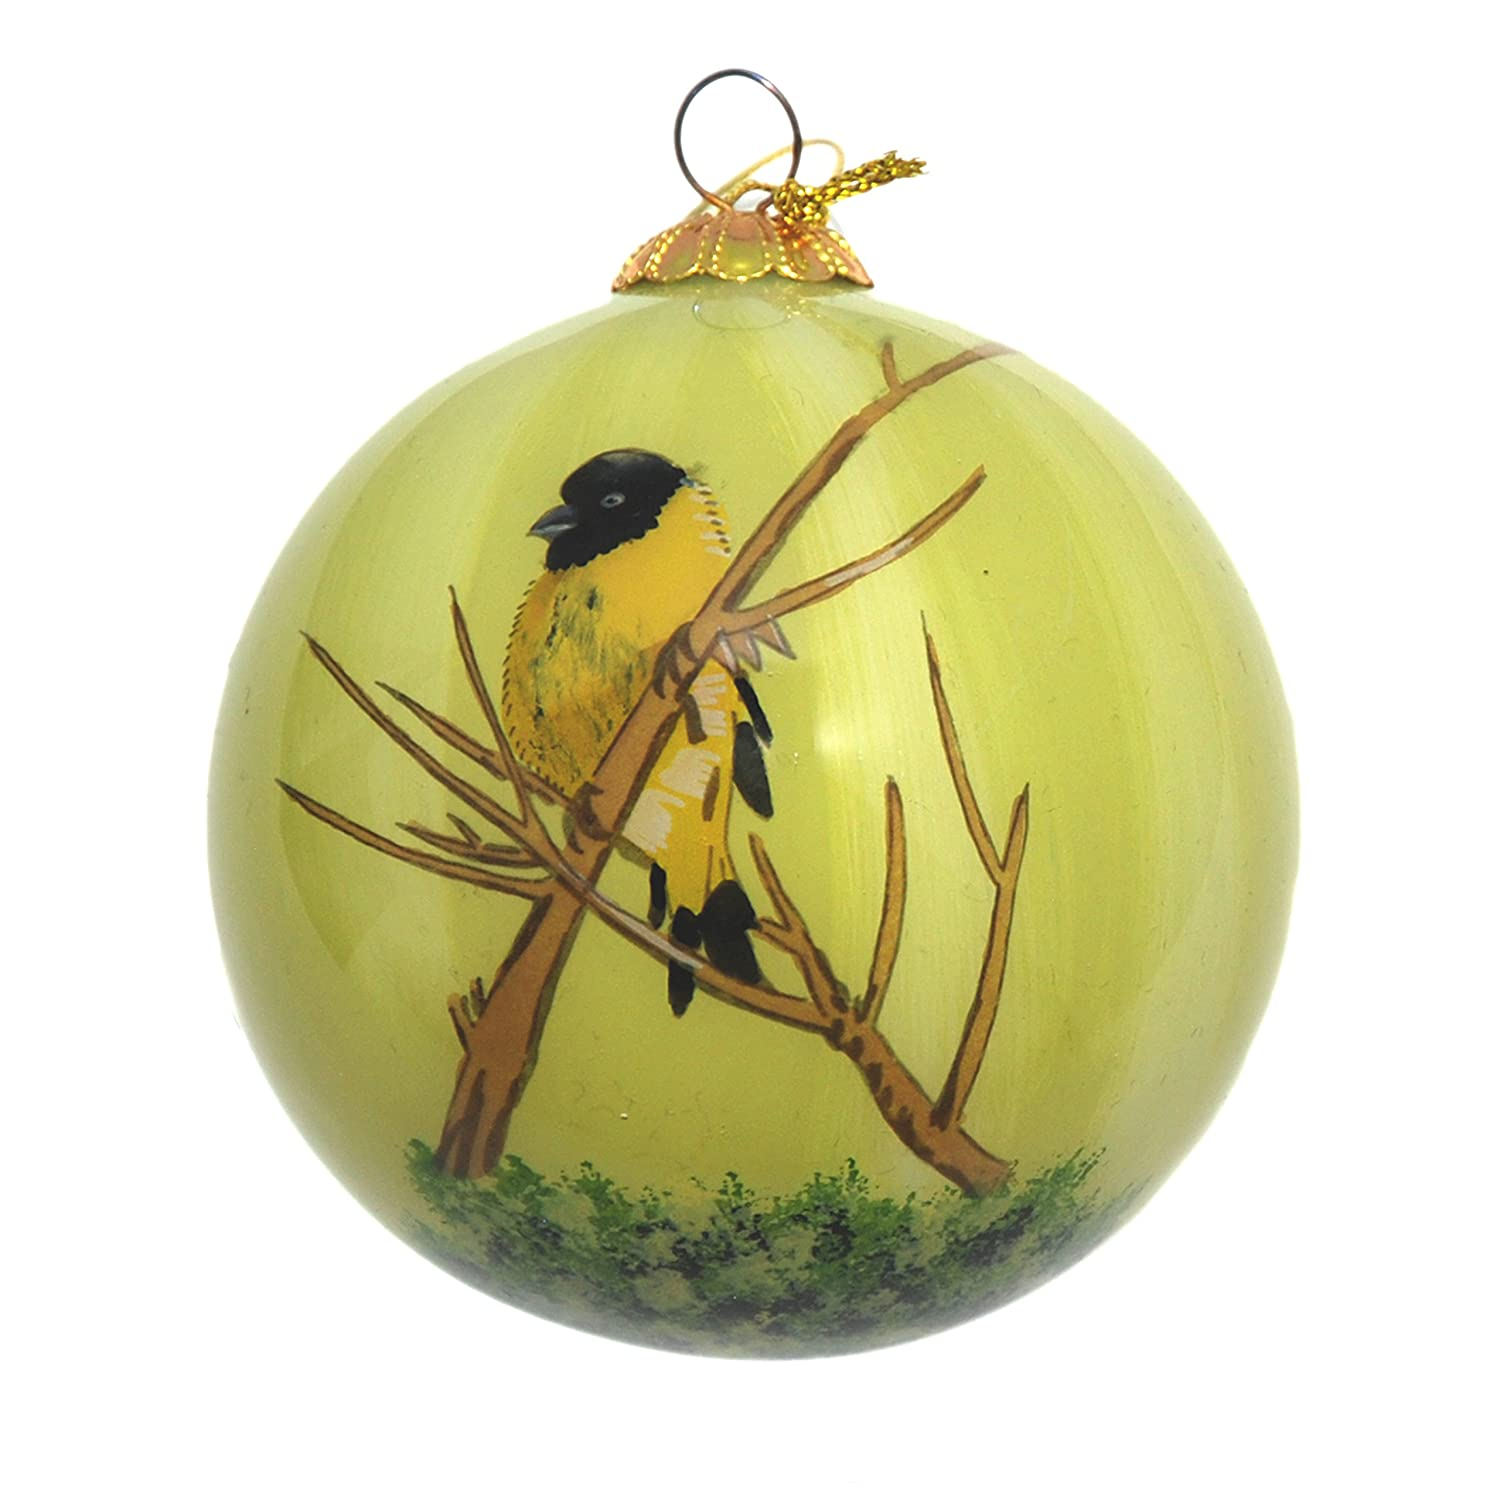 Hand Painted Glass Christmas Ornament - Yellow Finch